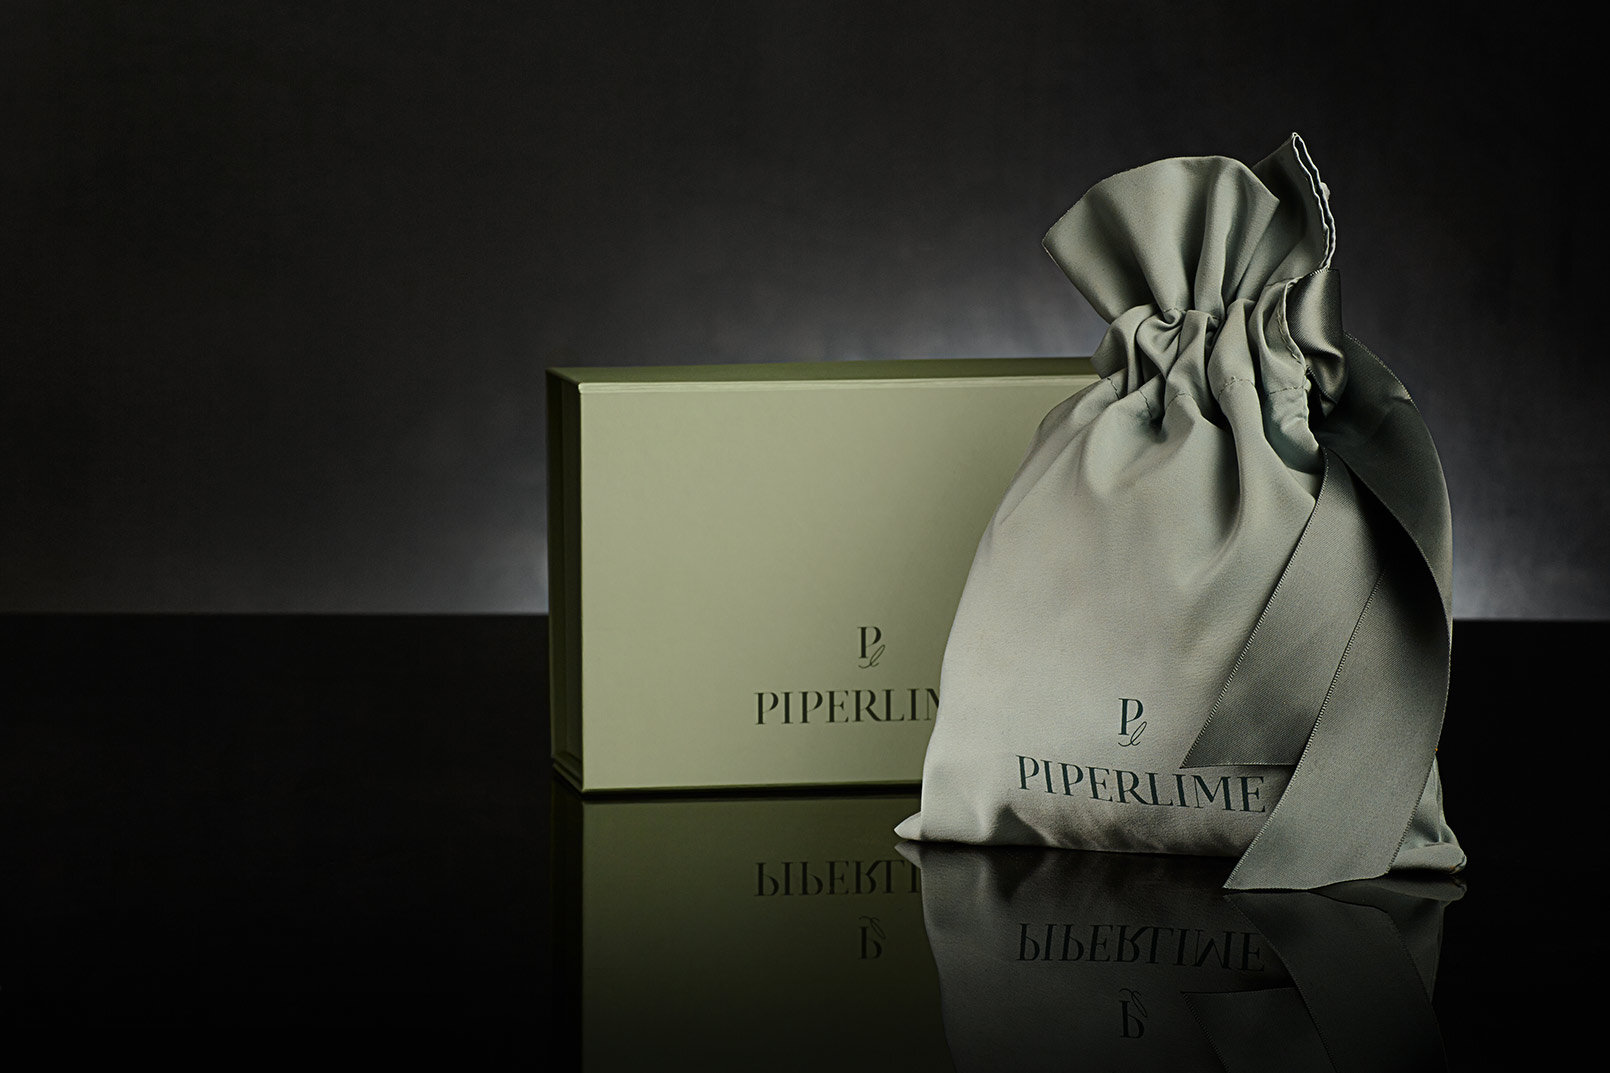 Piperlime-Gap-Pouch-Box-Ecommerce-Design-Packaging-Company-1.JPG